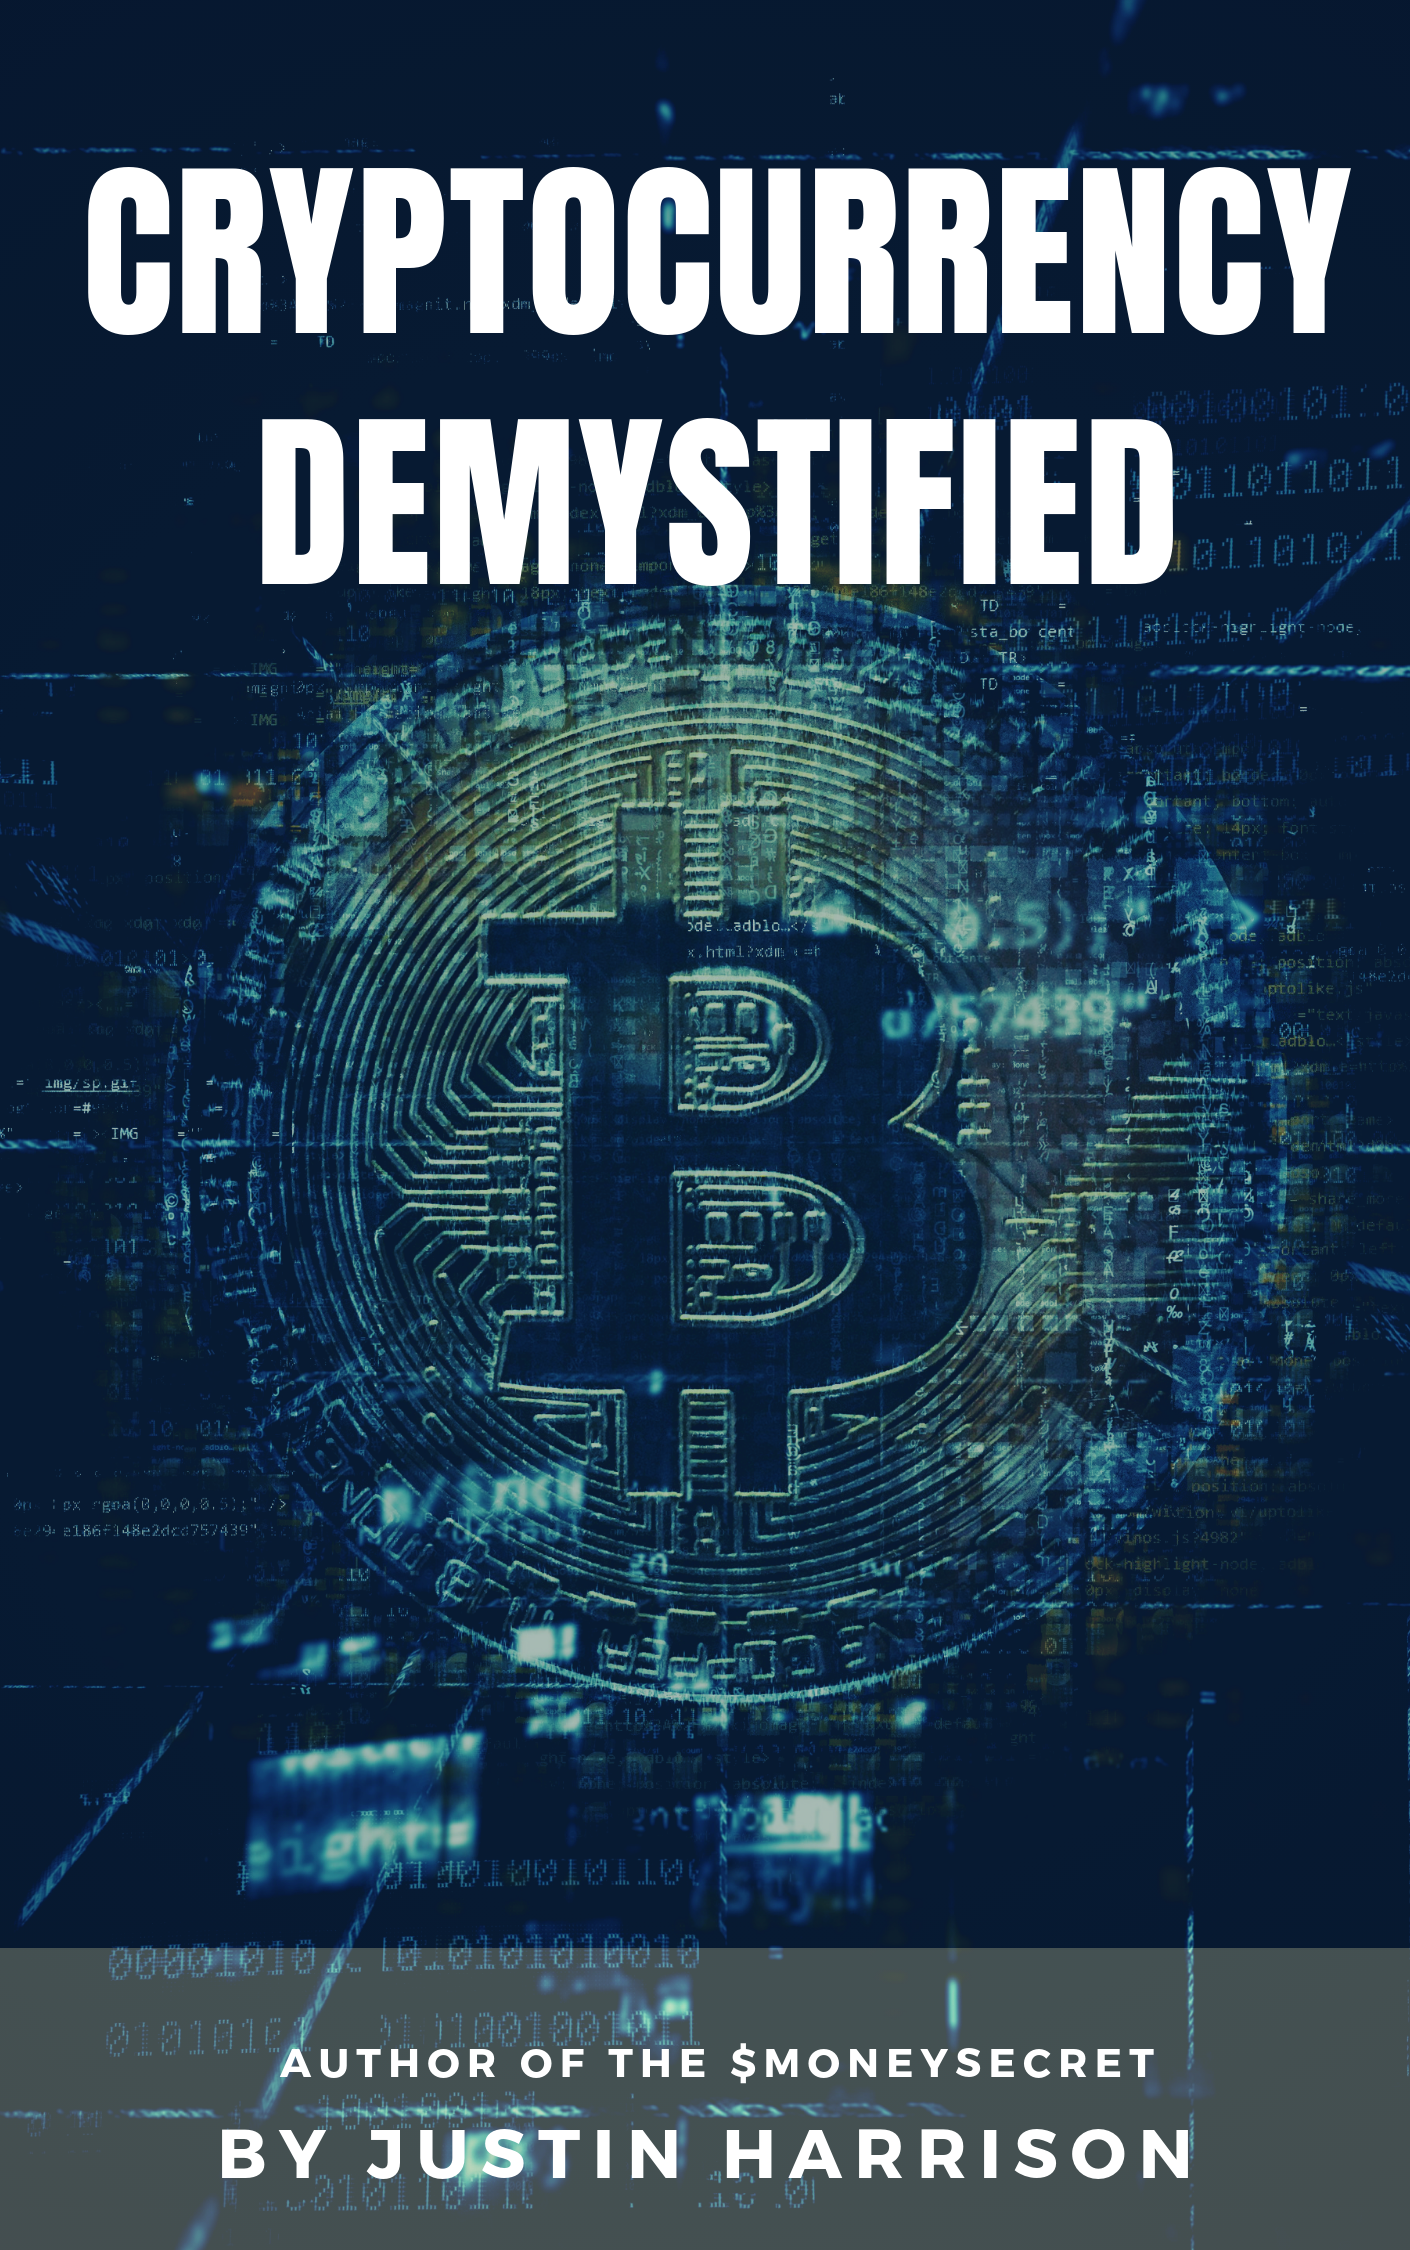 CRYPTOCURRENCY DEMYSTIFIED